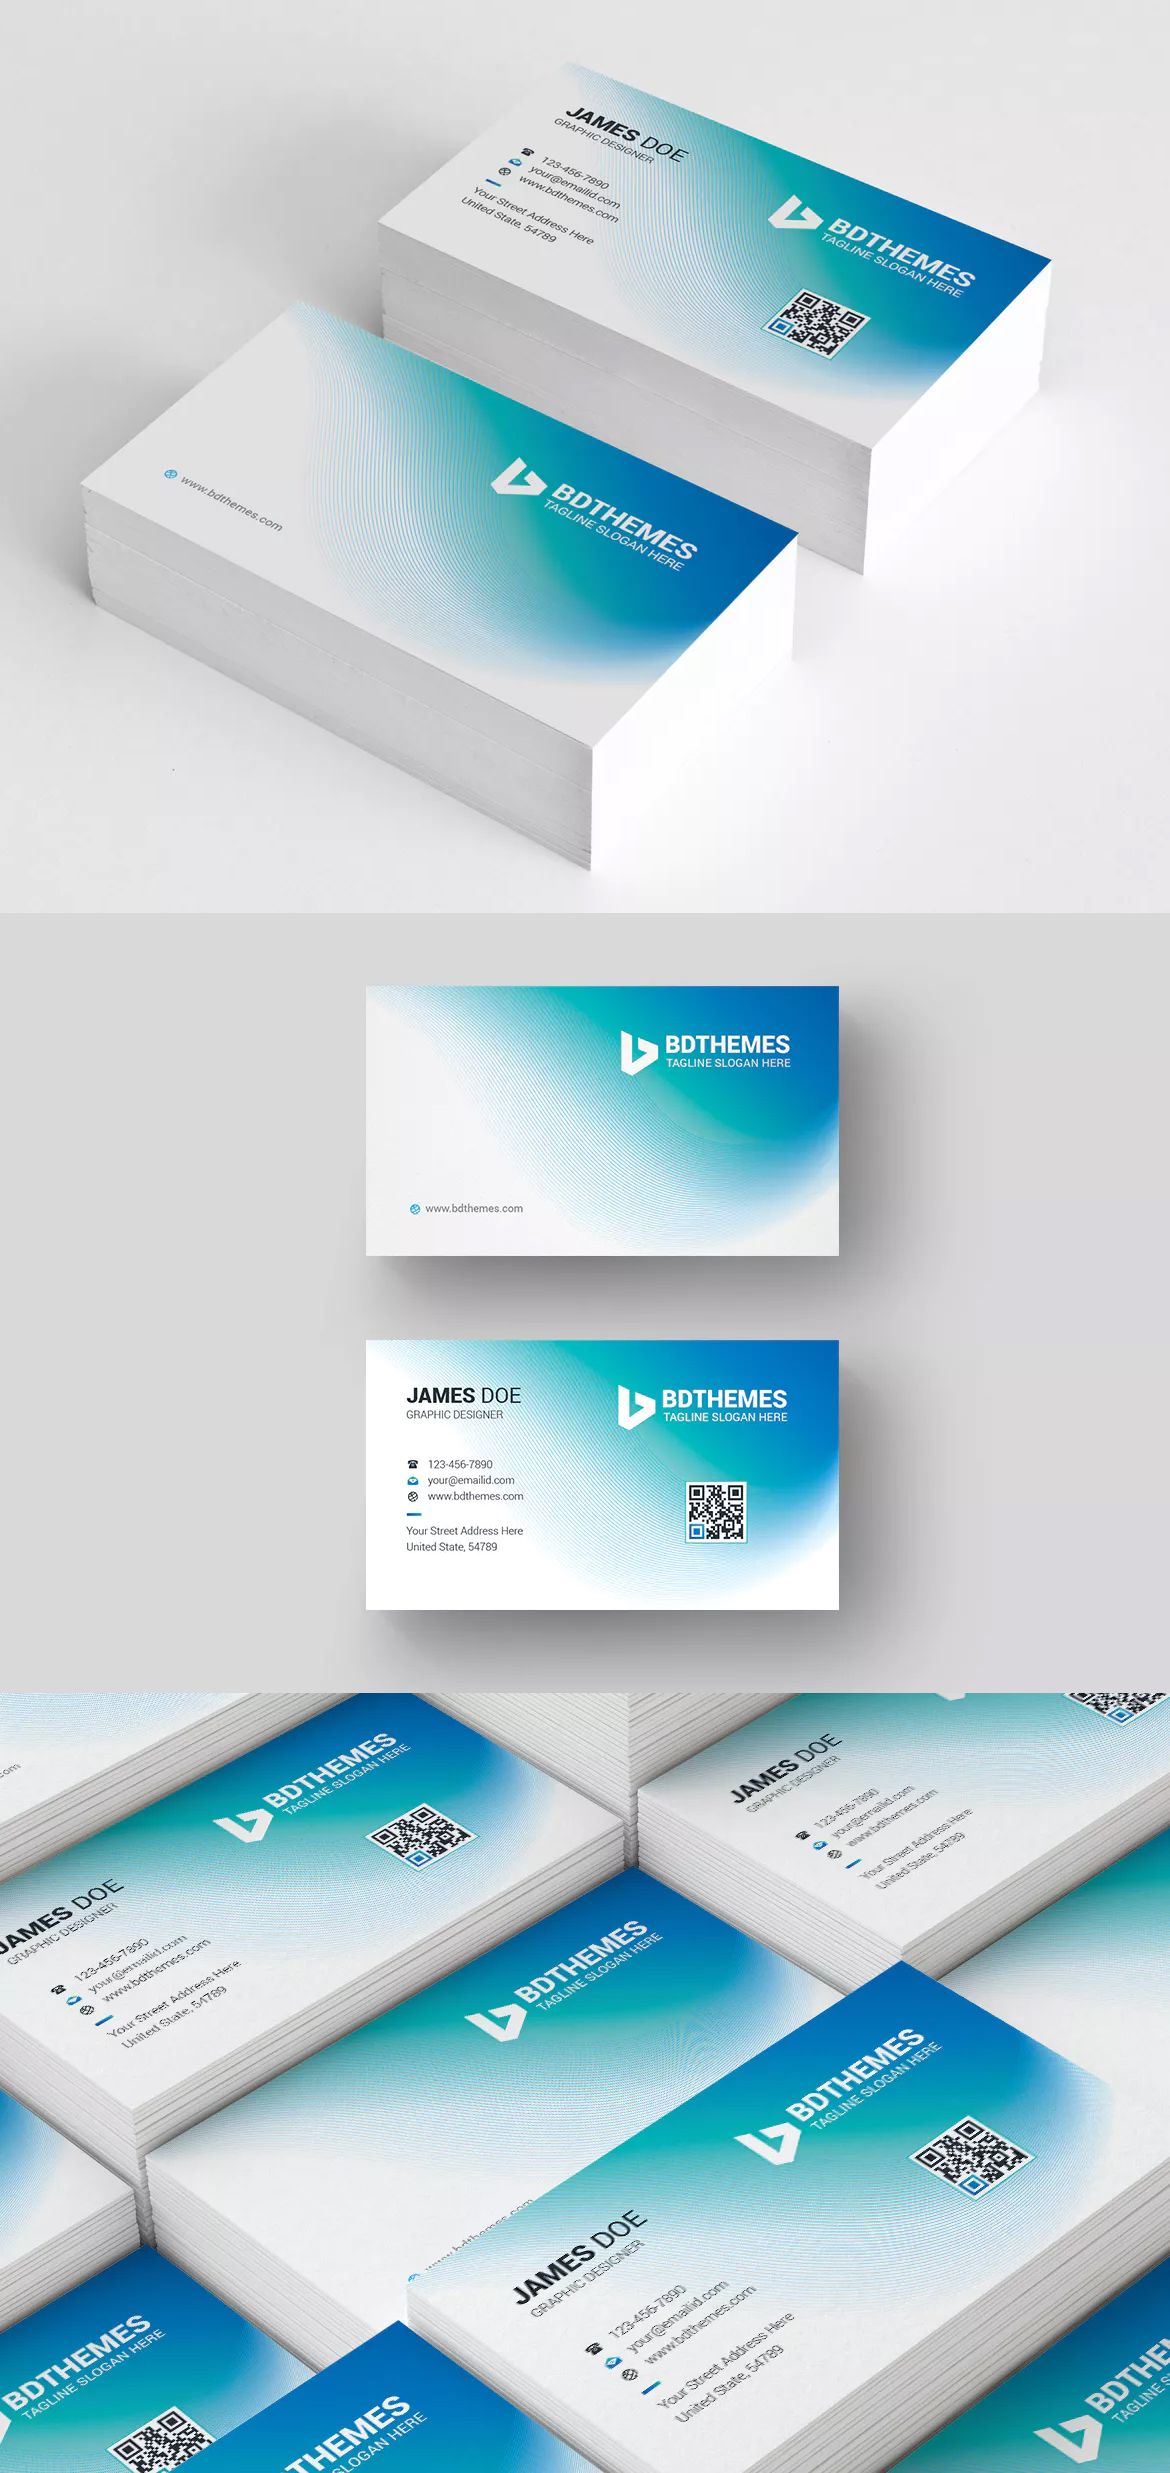 business card template ai eps psd beautiful and modern looked business card for any type of business or corporate office its comes with turquoise blue